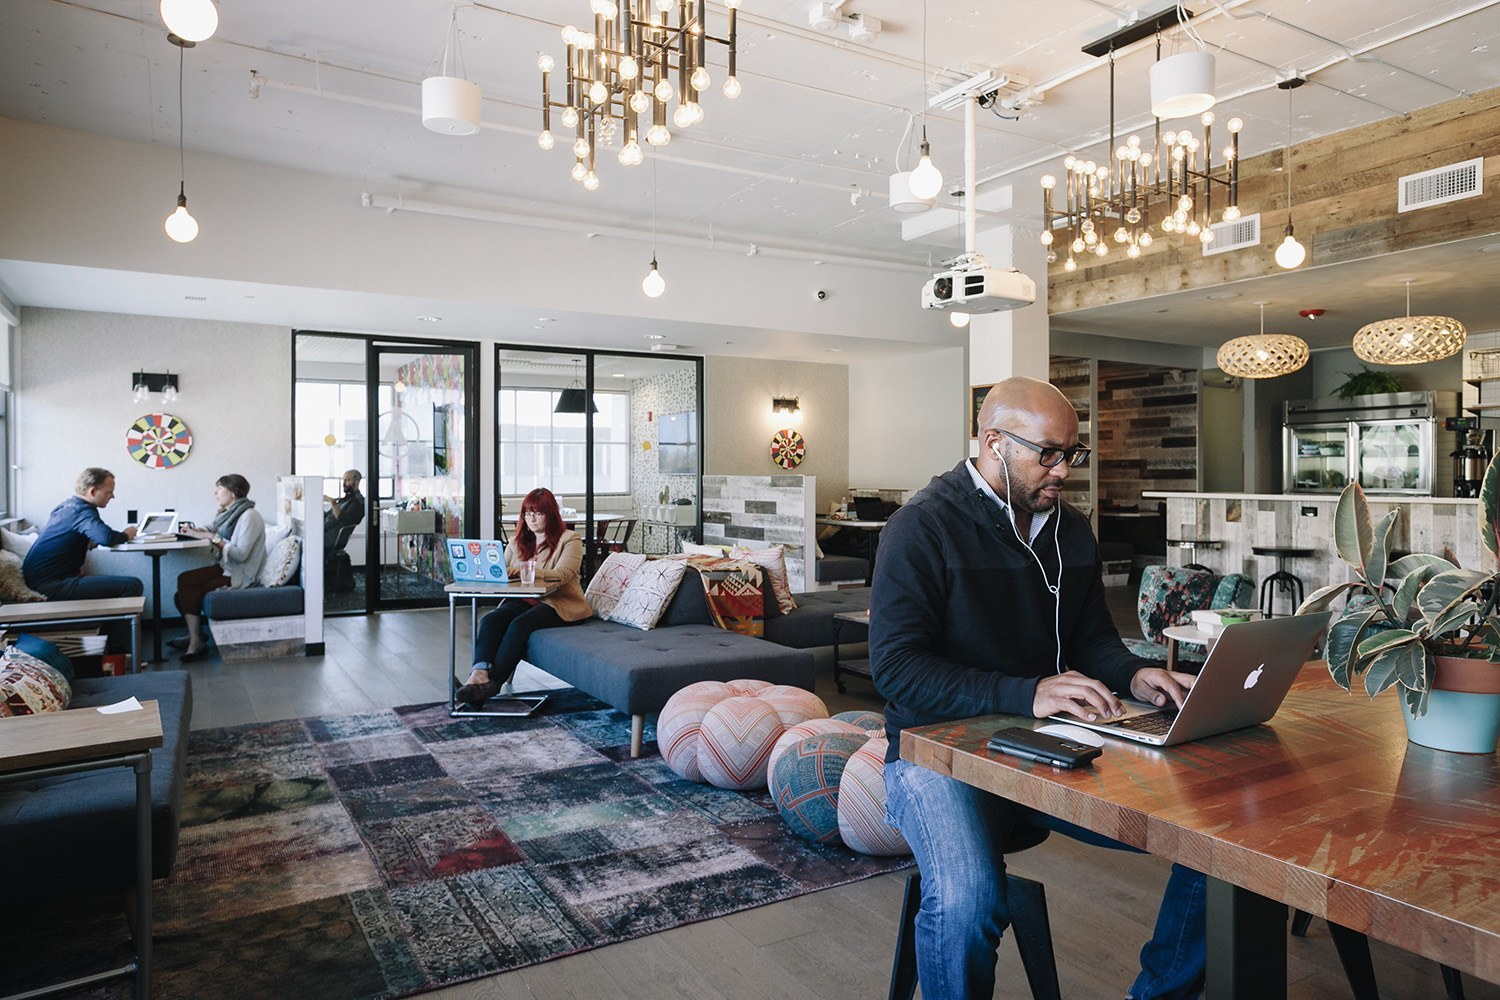 wework-coworking-space-San-Francisco